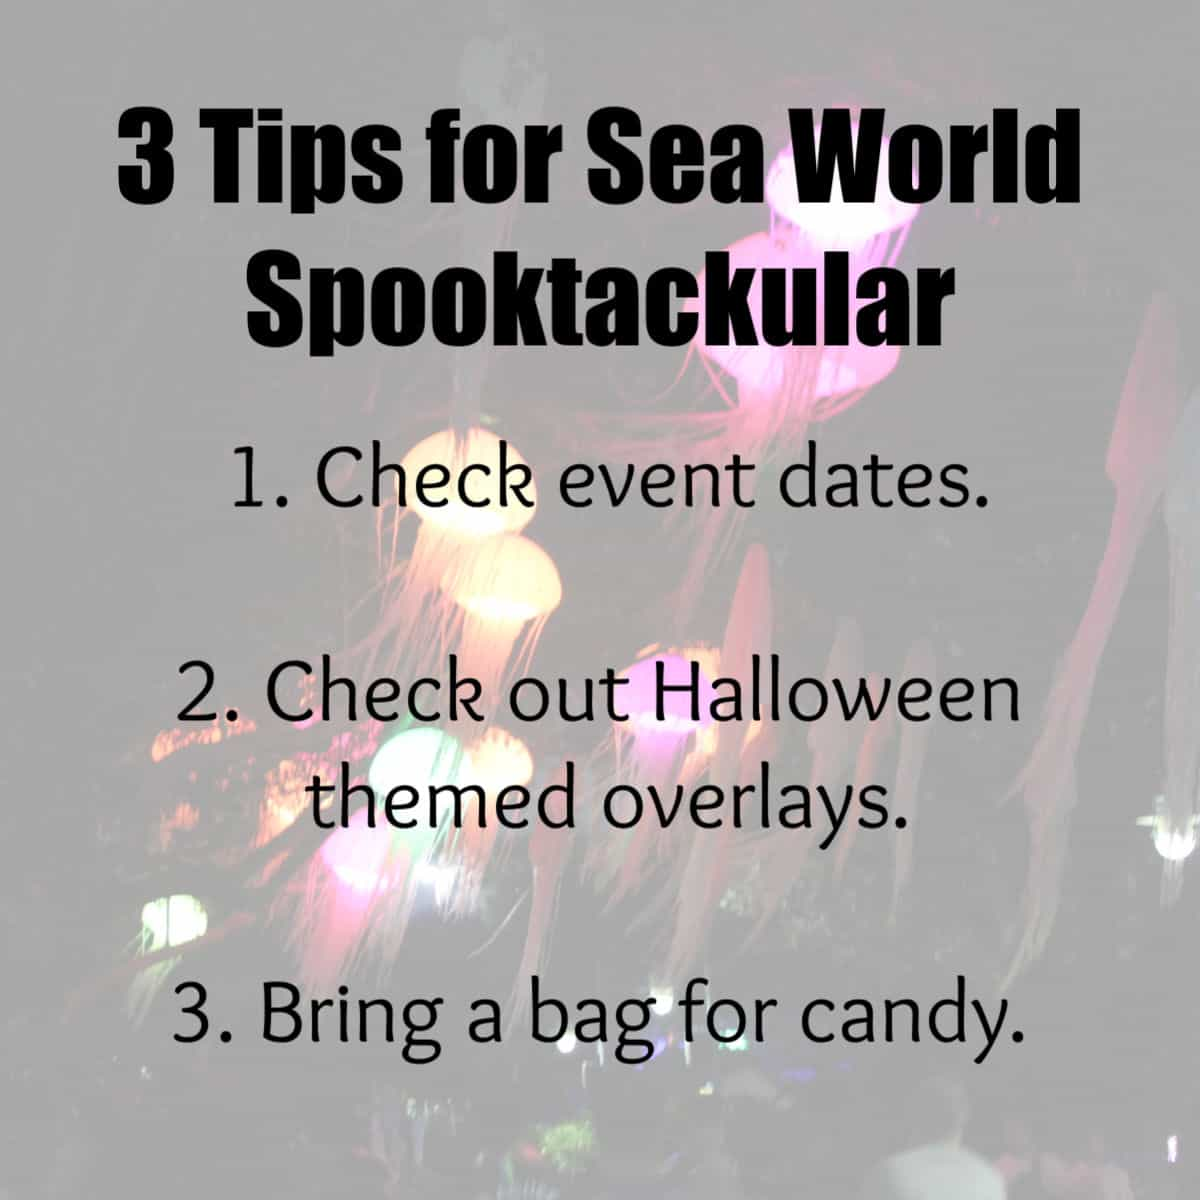 3 Tips for Sea World Spooktackular